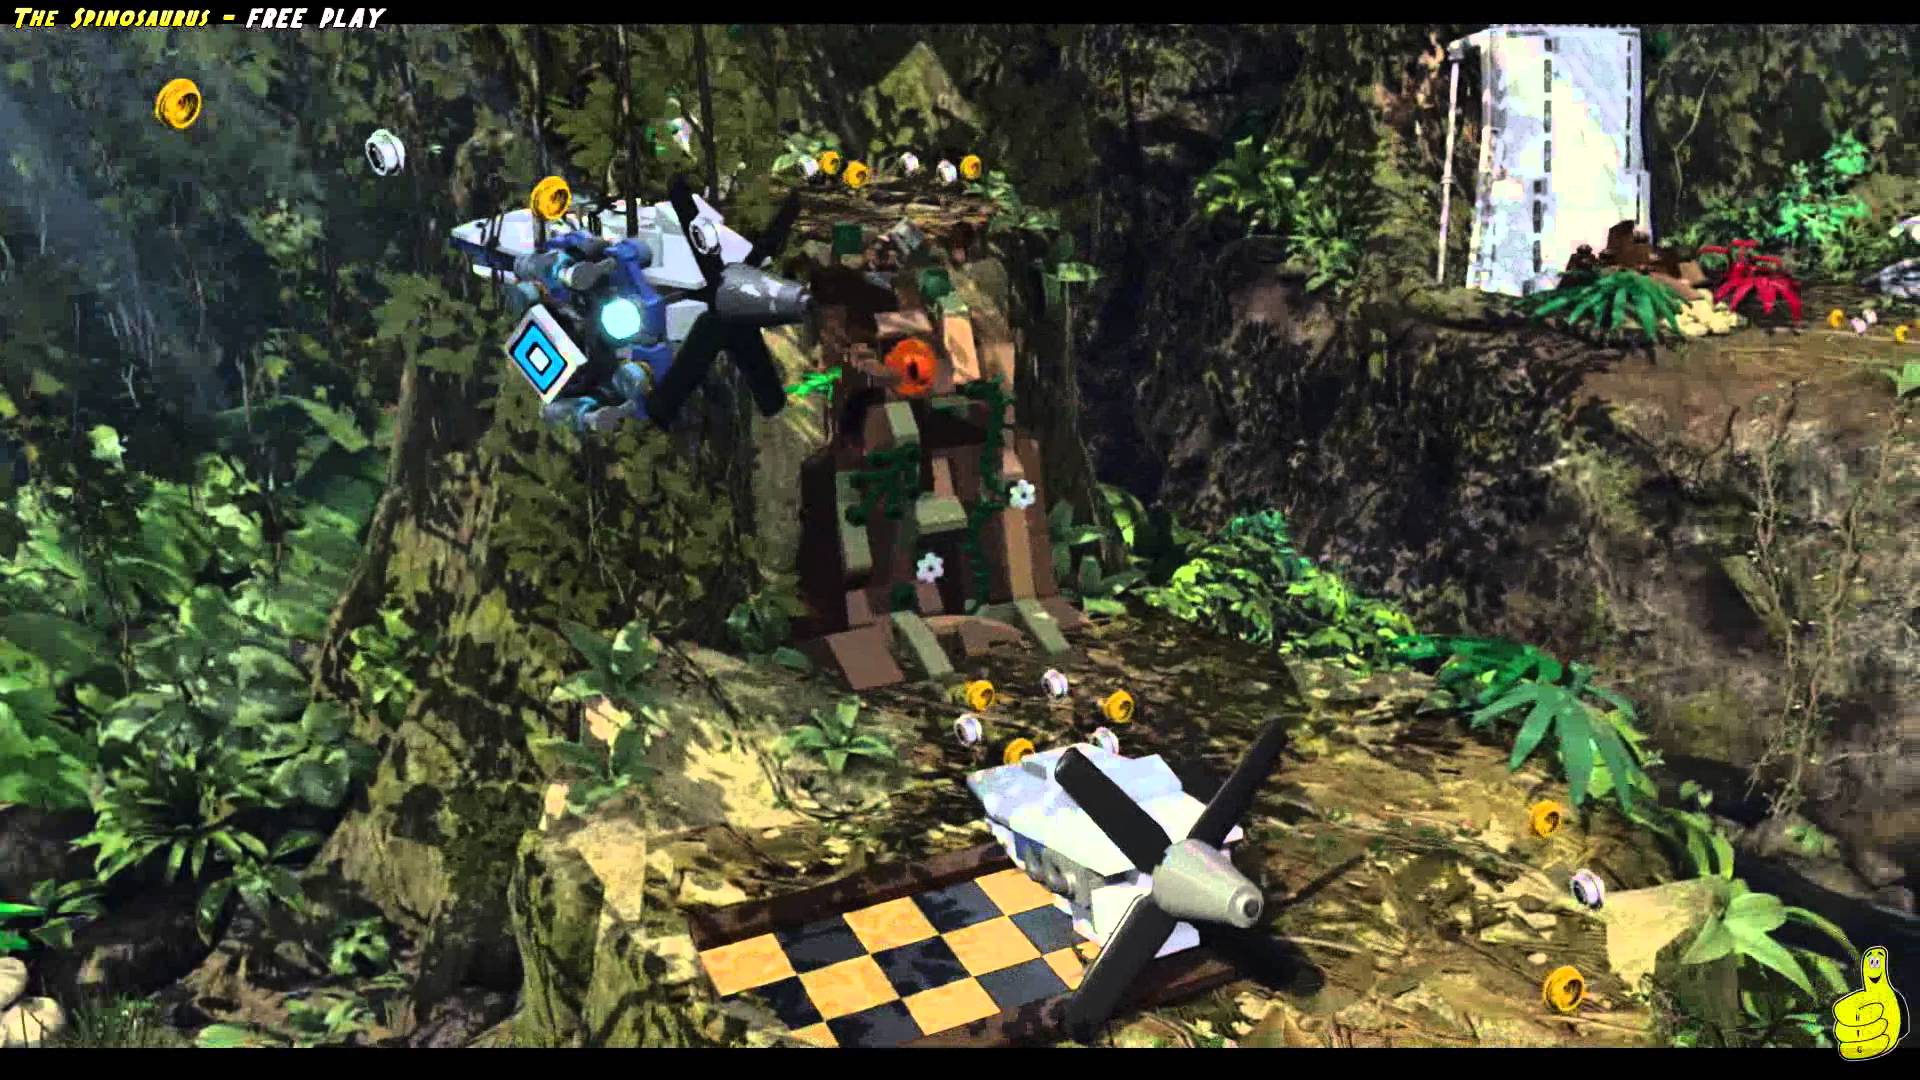 Lego Jurassic World: Level 12 The Spinosaurus FREE PLAY (All Collectibles) – HTG